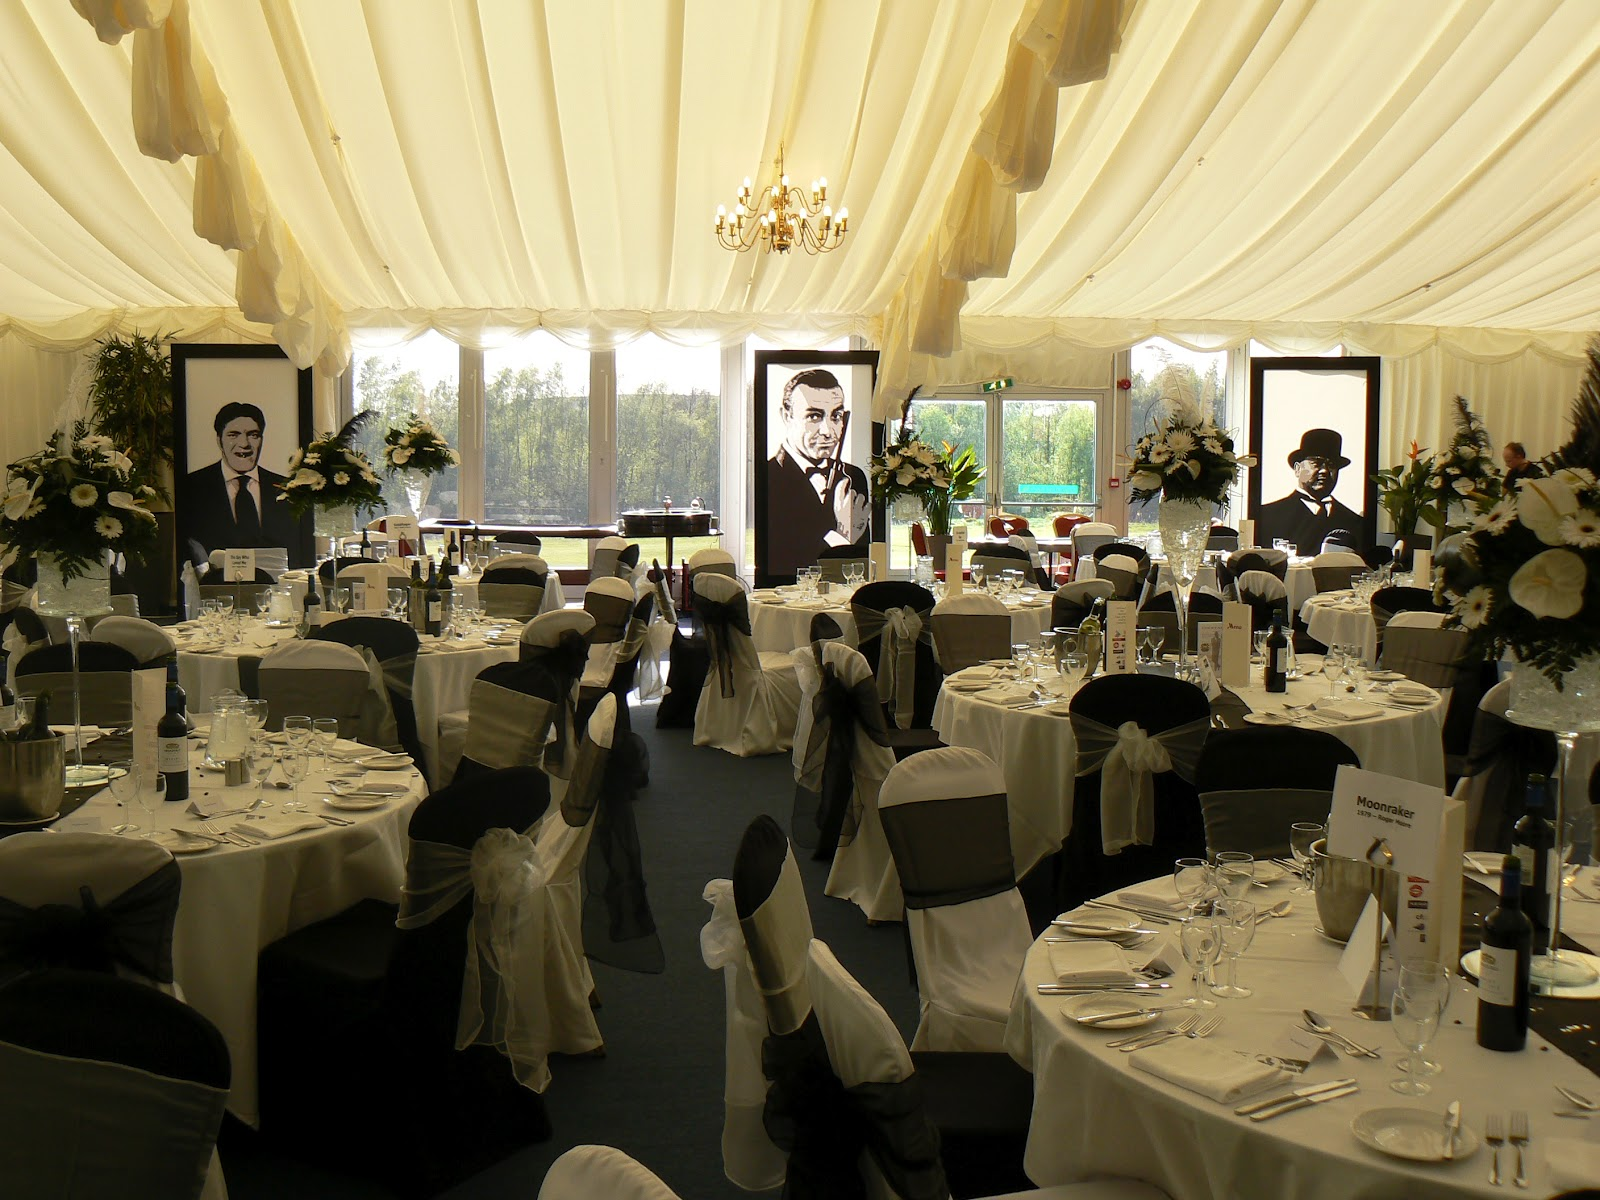 Latest Event News Glamorous Events And Showcase Preparations